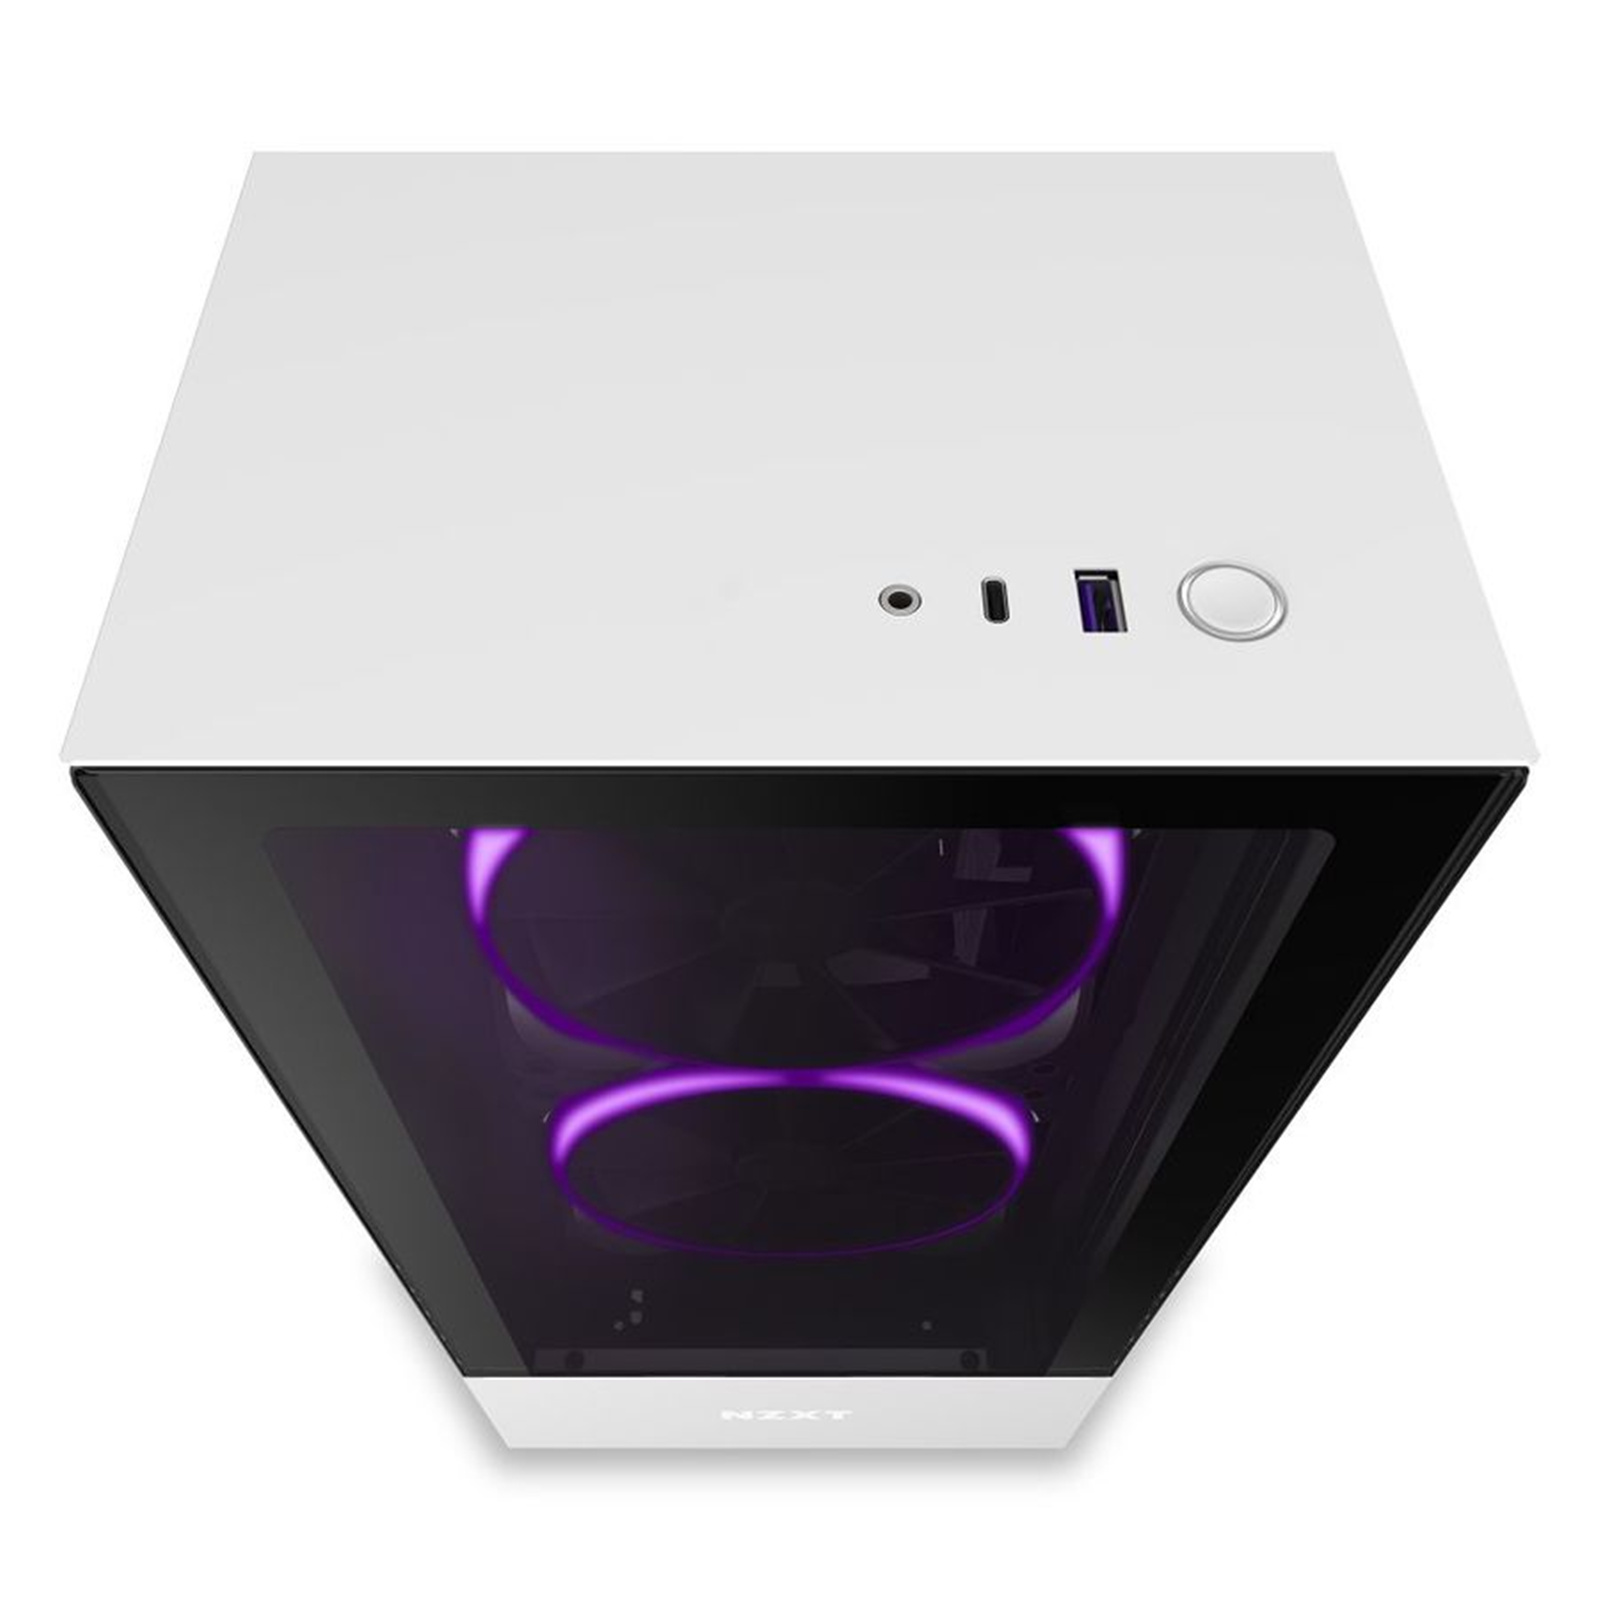 Buy The Nzxt H510 Elite Matte White Rgb Edition Atx Midtower Gaming Case Ca H510e W1 Online Pbtech Co Nz